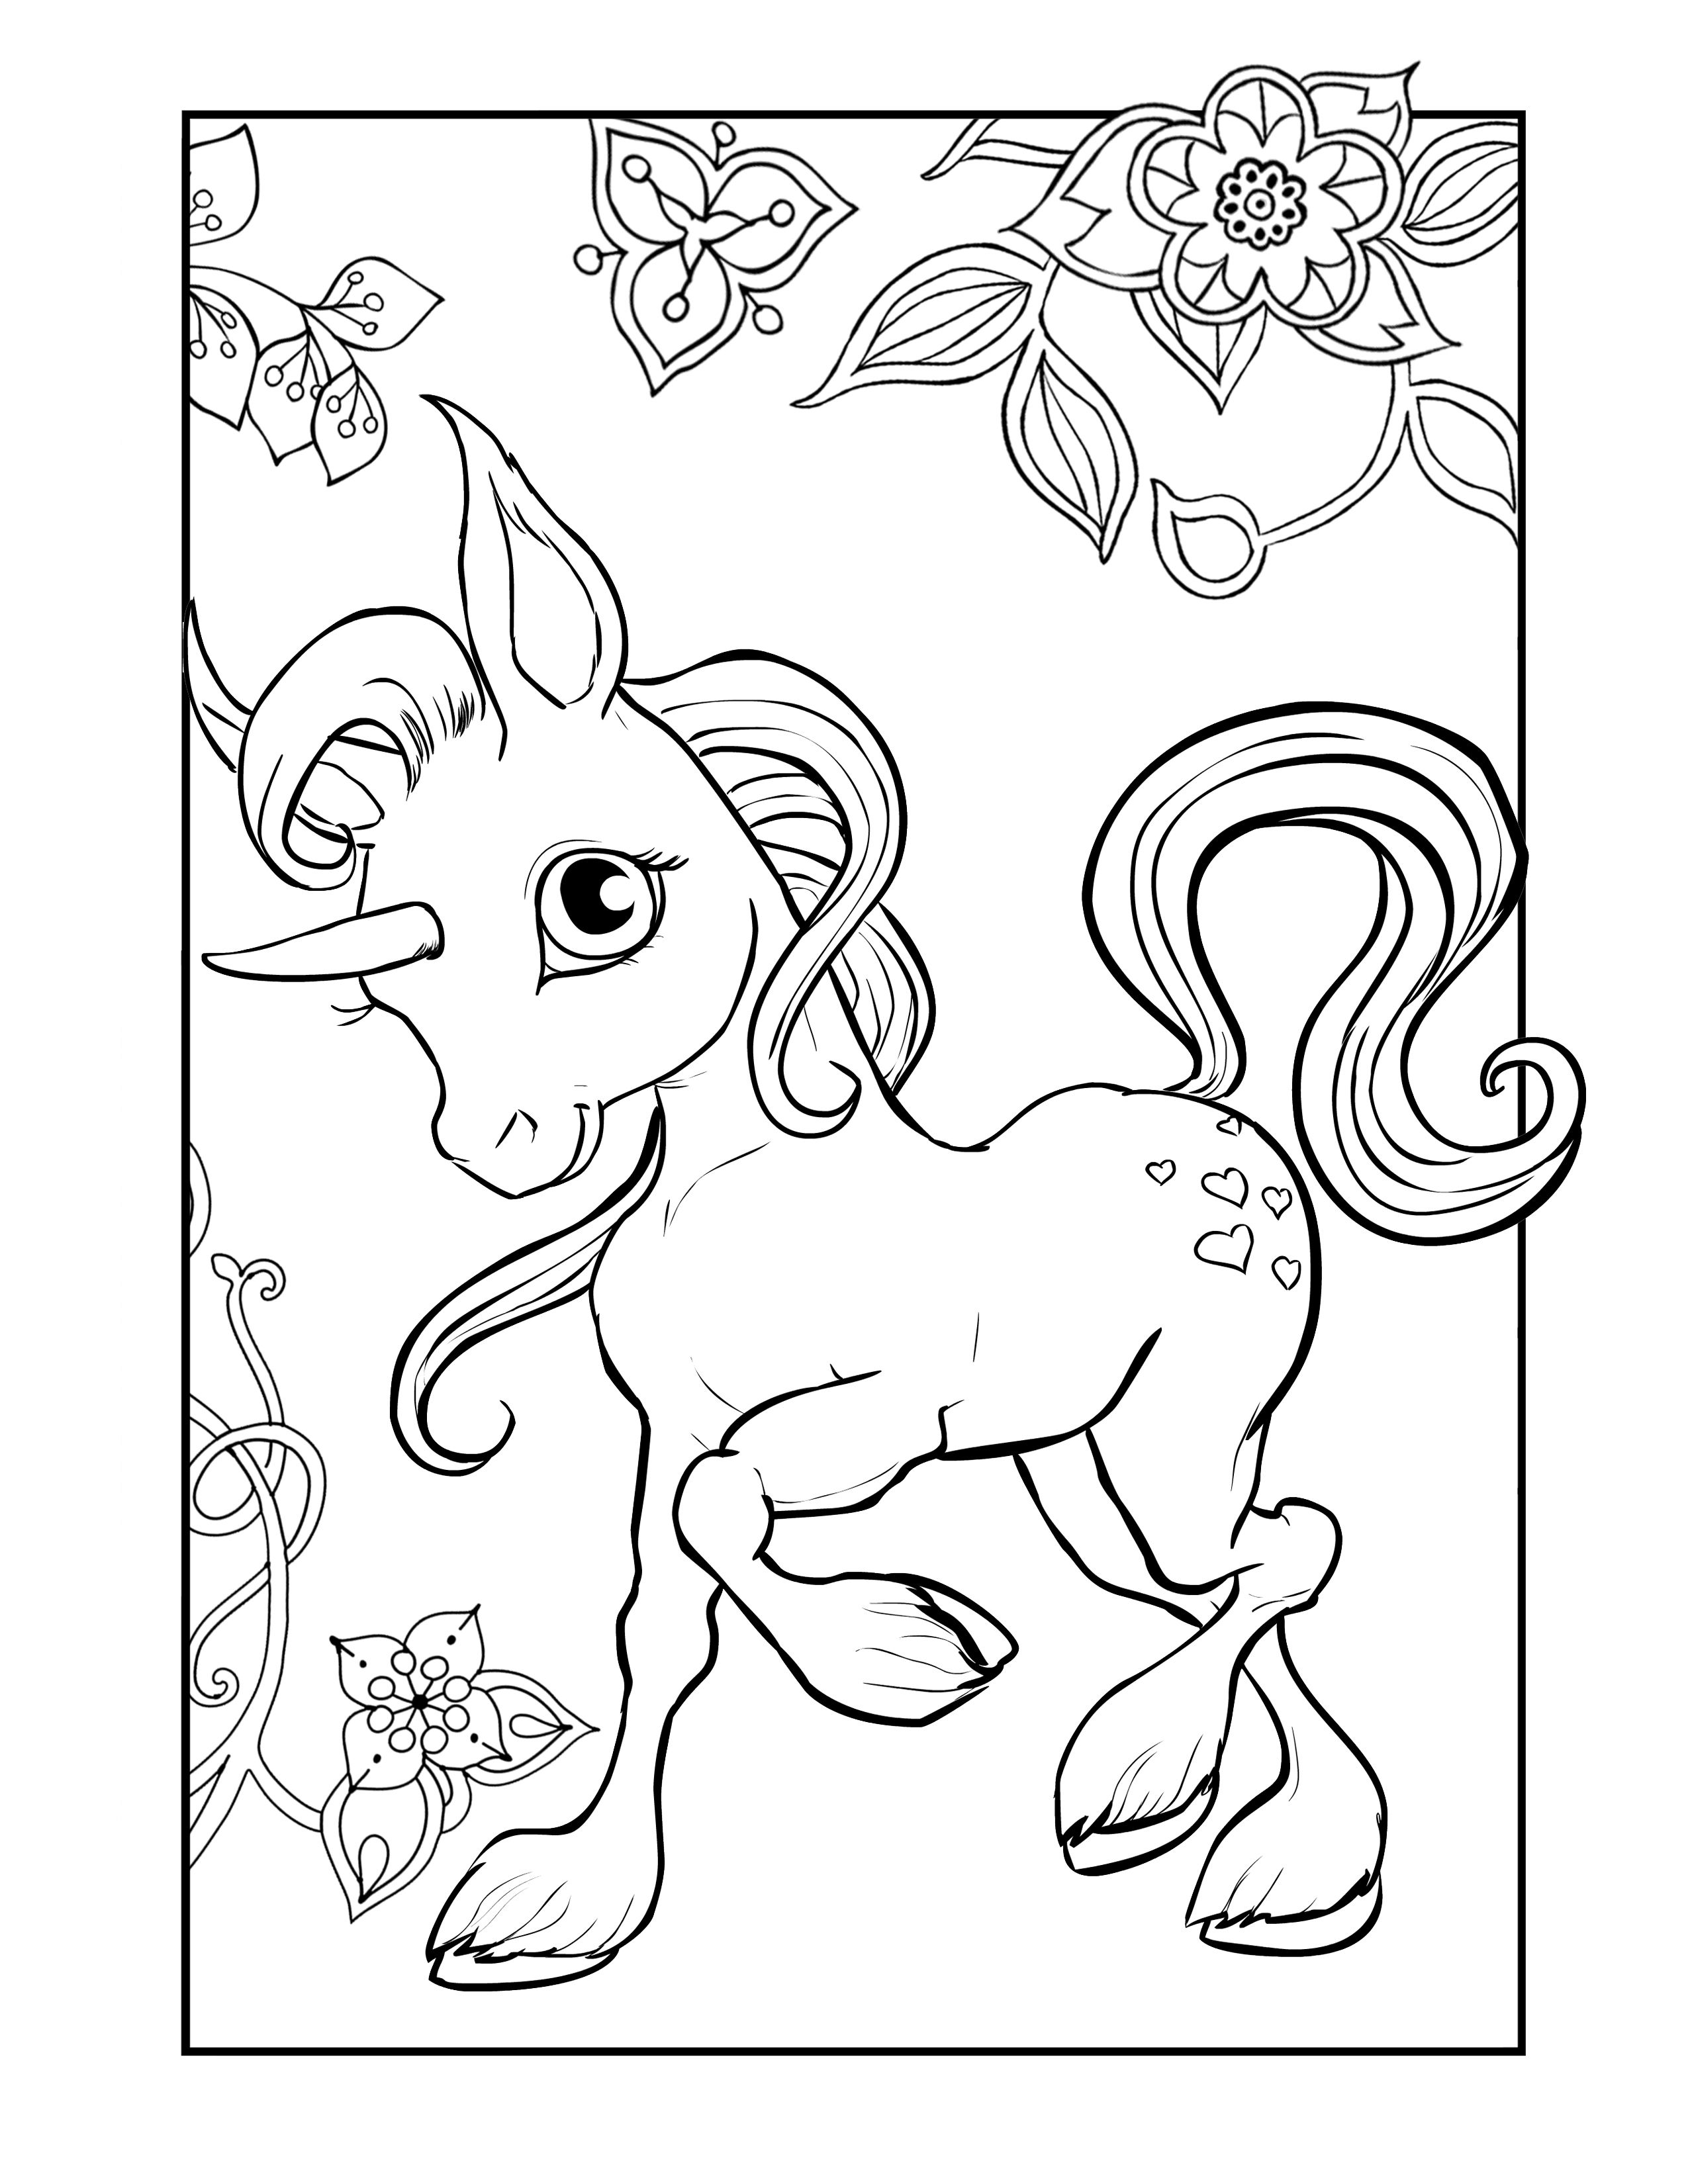 coloring pictures unicorn unicorn coloring pages to download and print for free coloring pictures unicorn 1 1